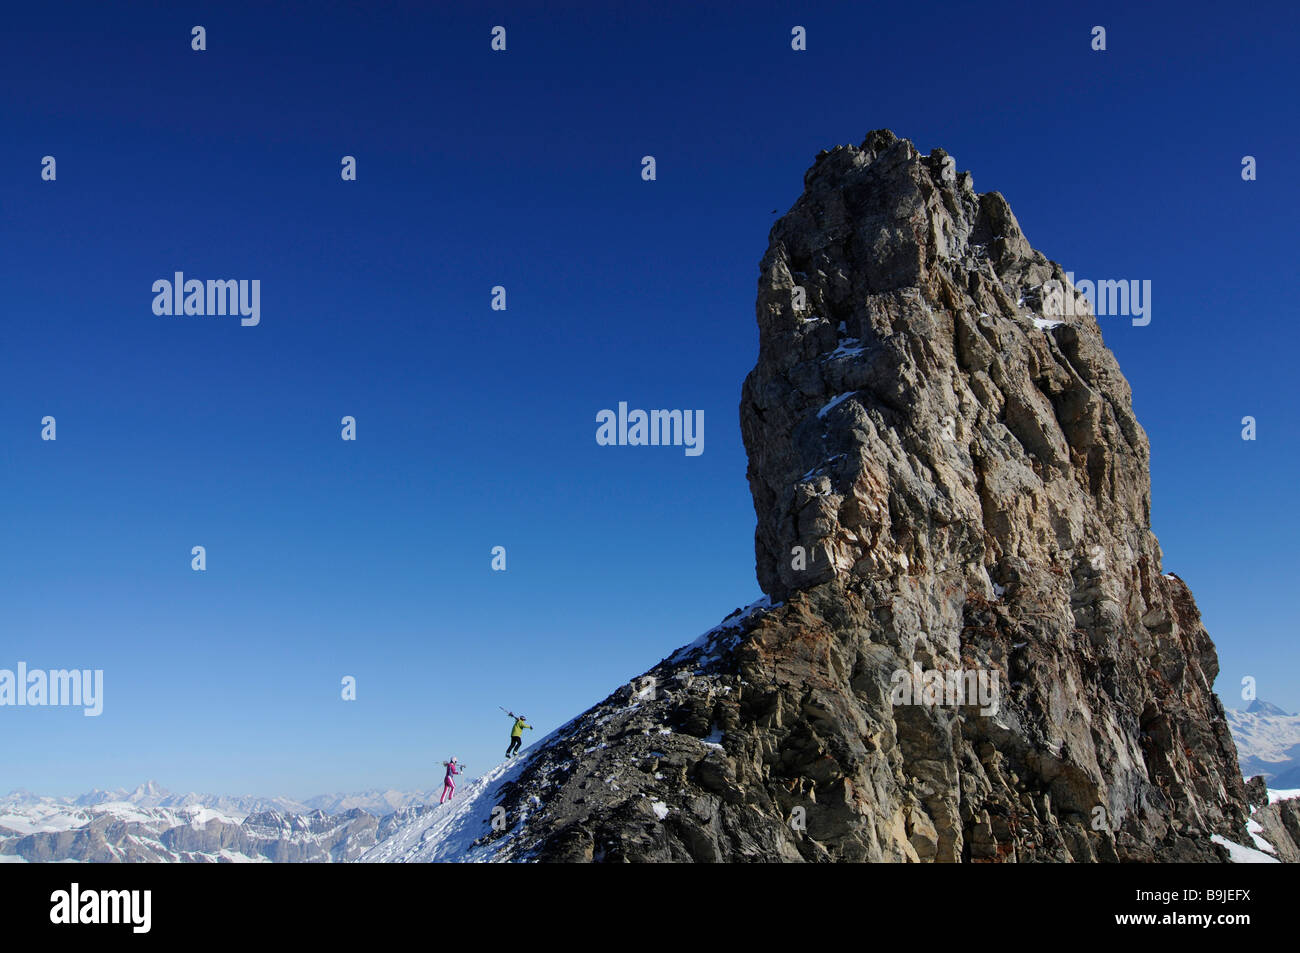 Skiers on Tour Saint Martin, Col du Pillon, skiing region Glacier 3000, Gstaad, Western Alps, Bernese Oberland, - Stock Image